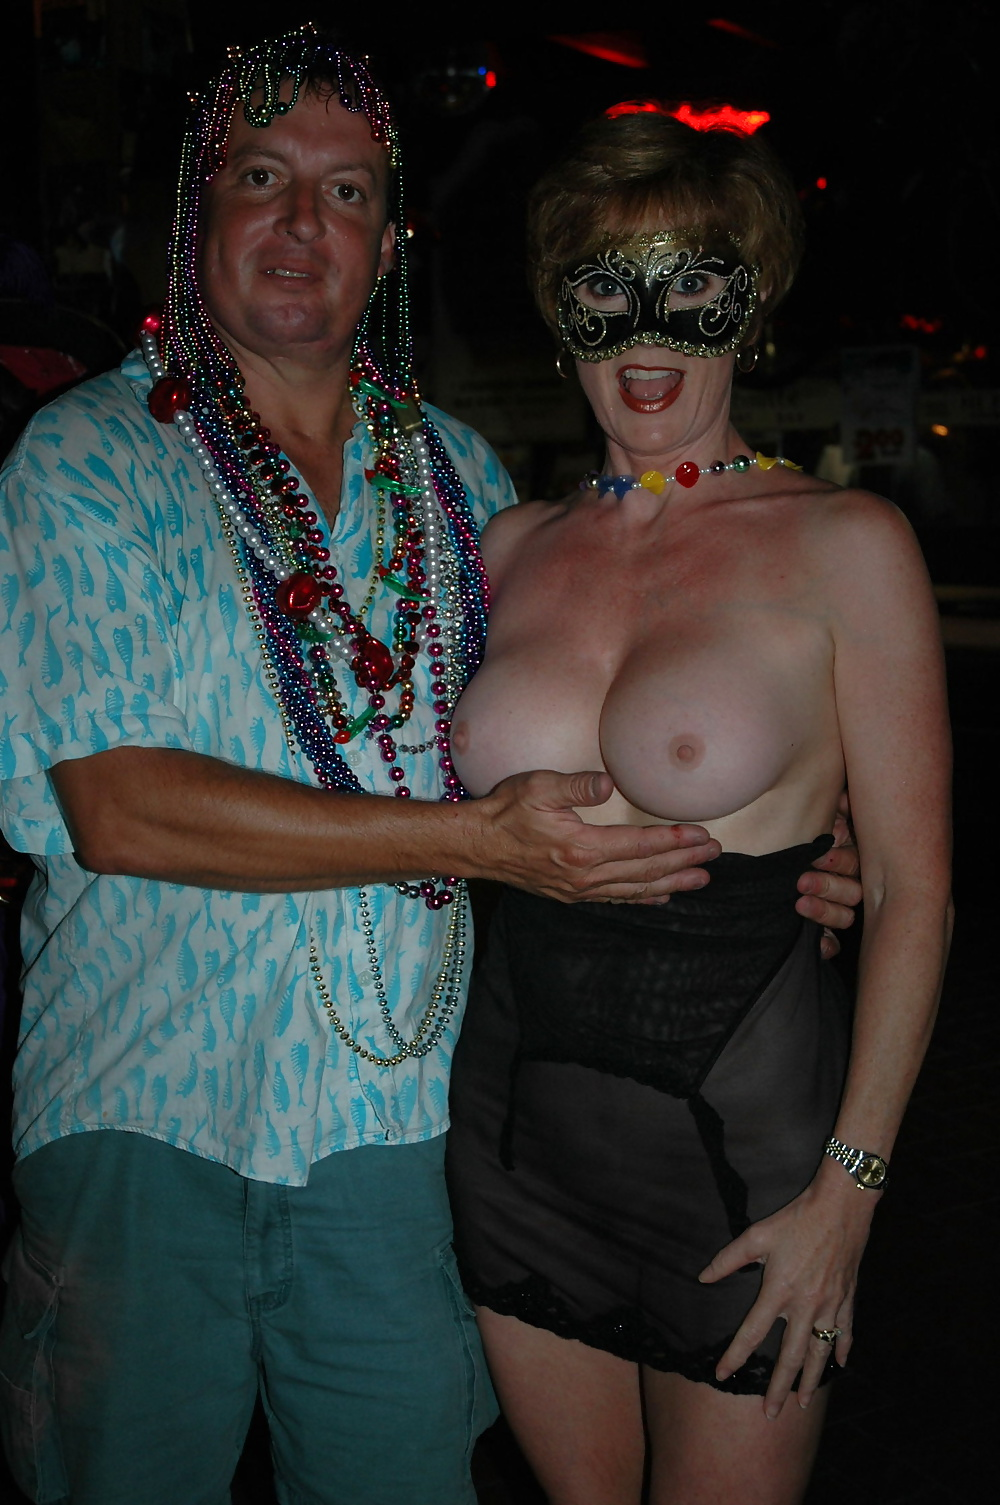 Garden of eden key west insiders review of key wests clothing optional bar